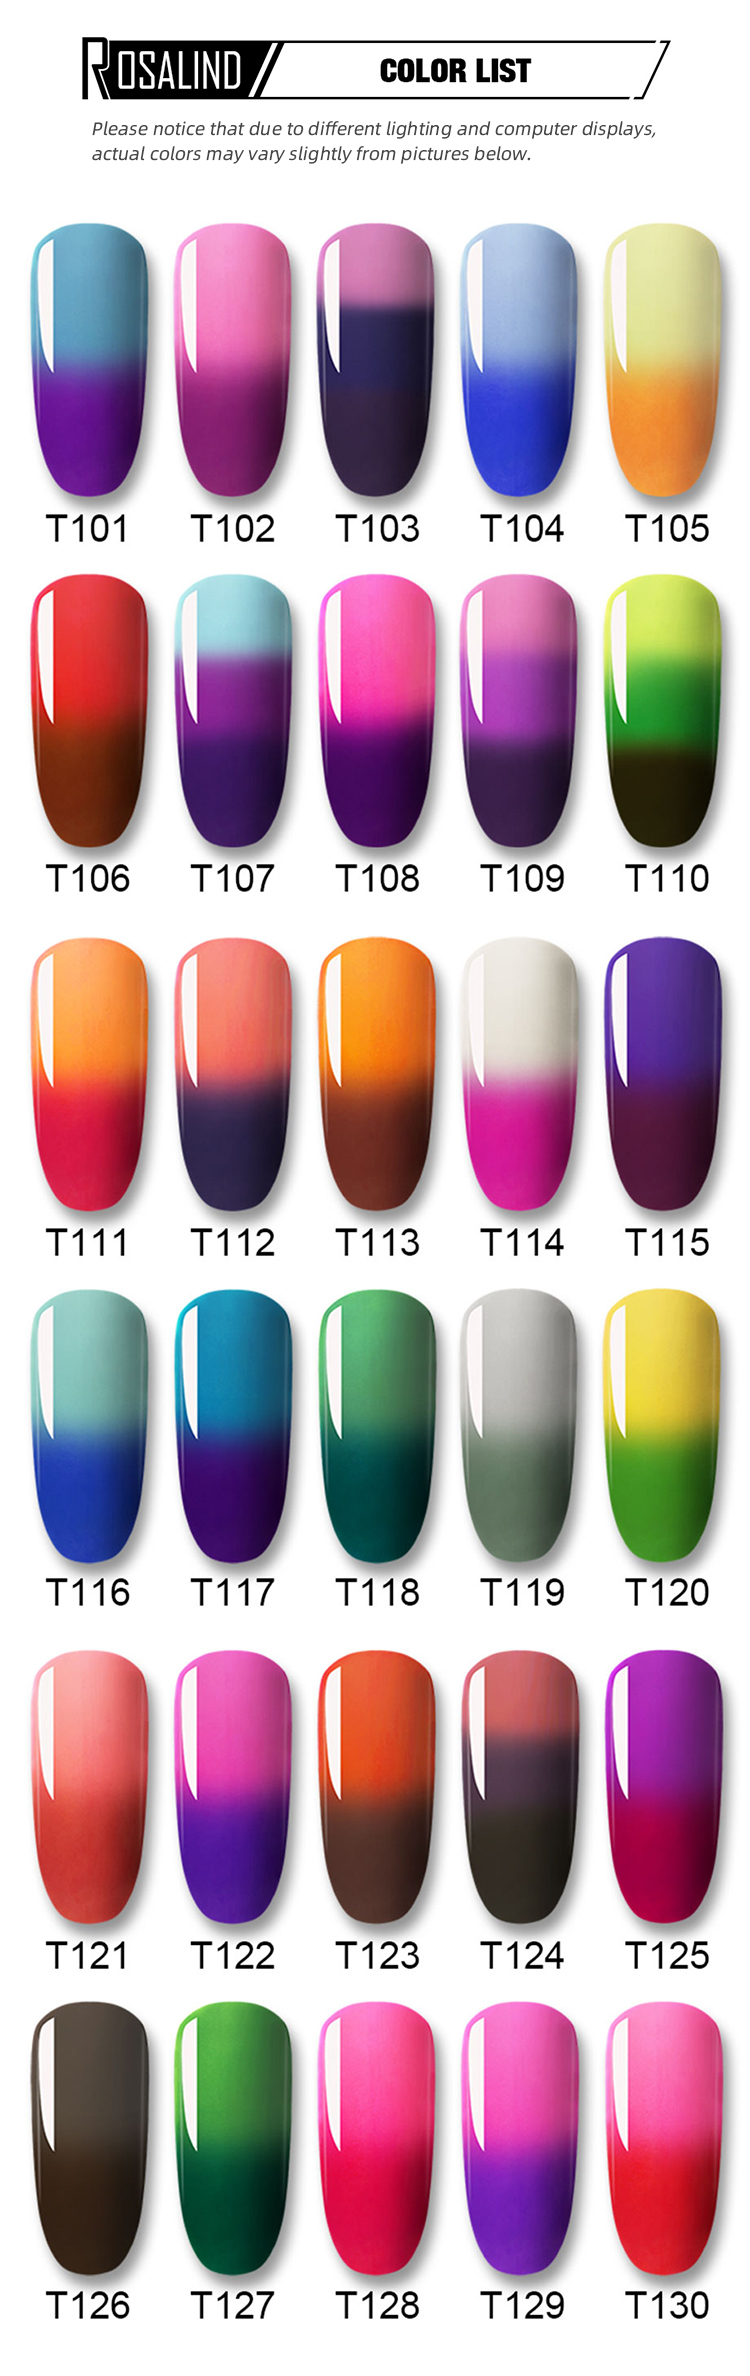 Rosalind semi permanent temperature color changing uv gel 7ml soak off gel nail polish with MSDS report